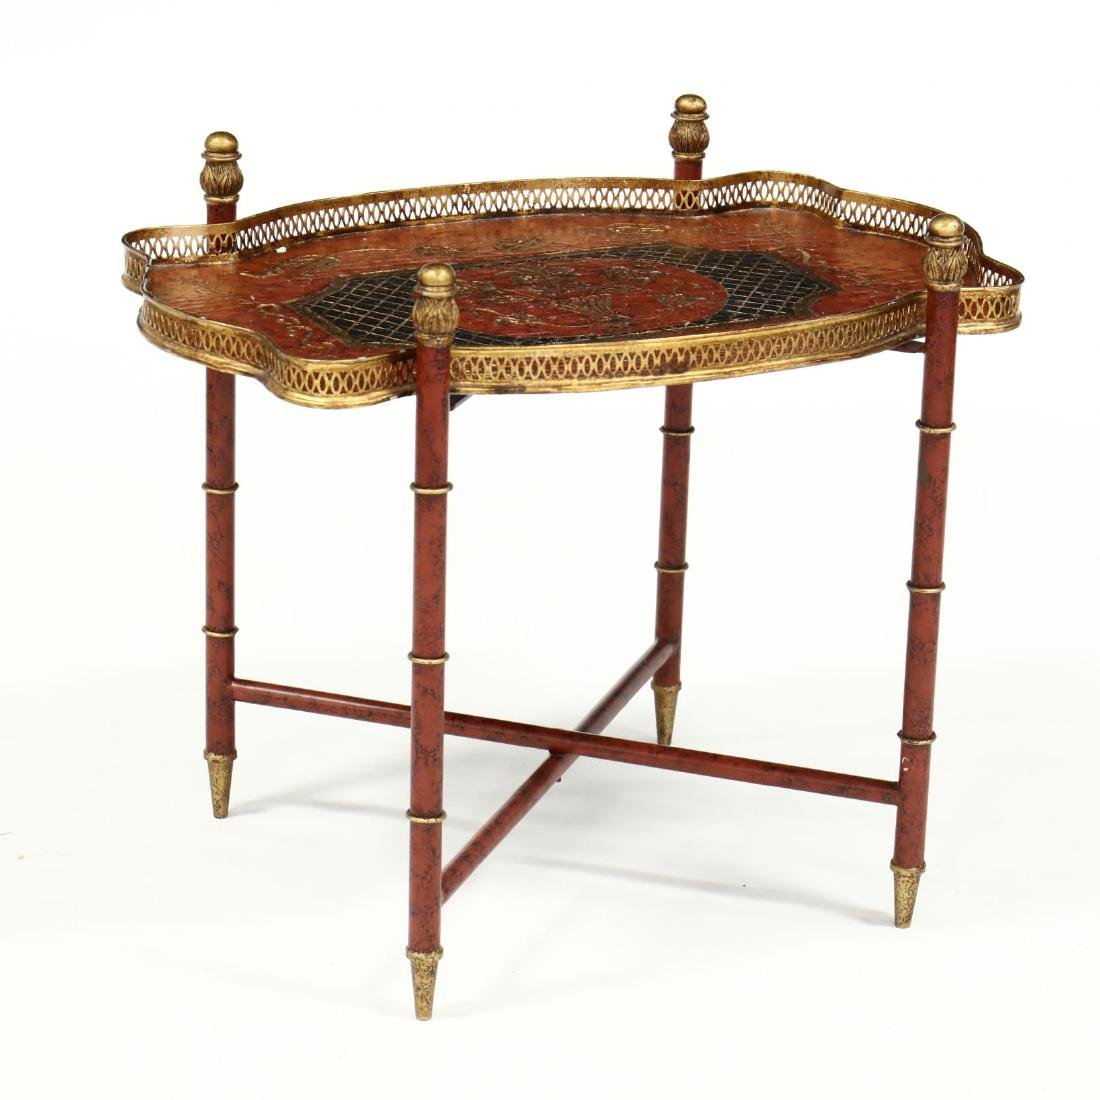 Chinoiserie Tole Tray on Stand